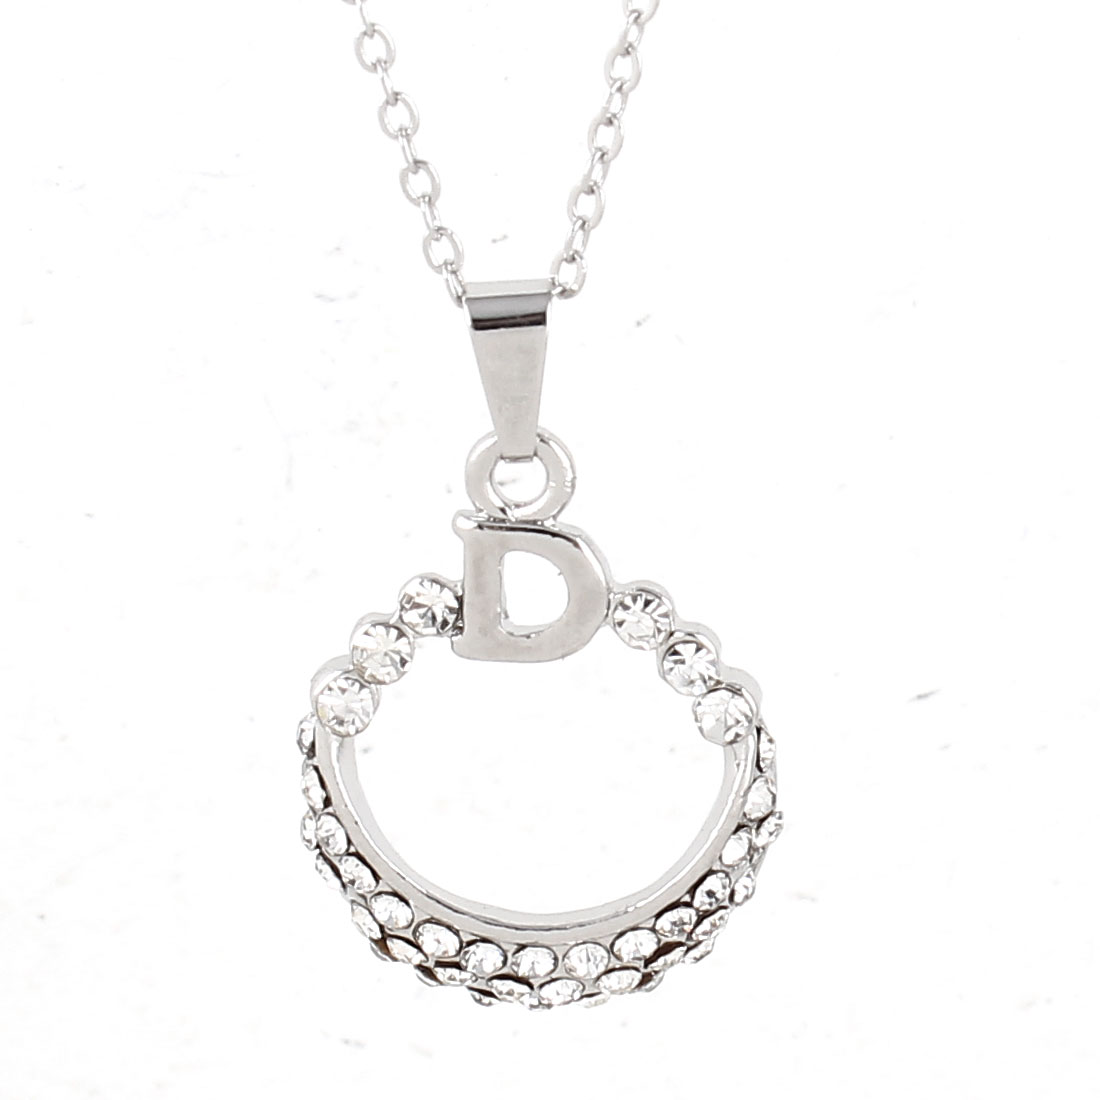 Lady Silver Tone Chain Link Rhinestone Detailing Ring Pendant Necklace 18mm Dia